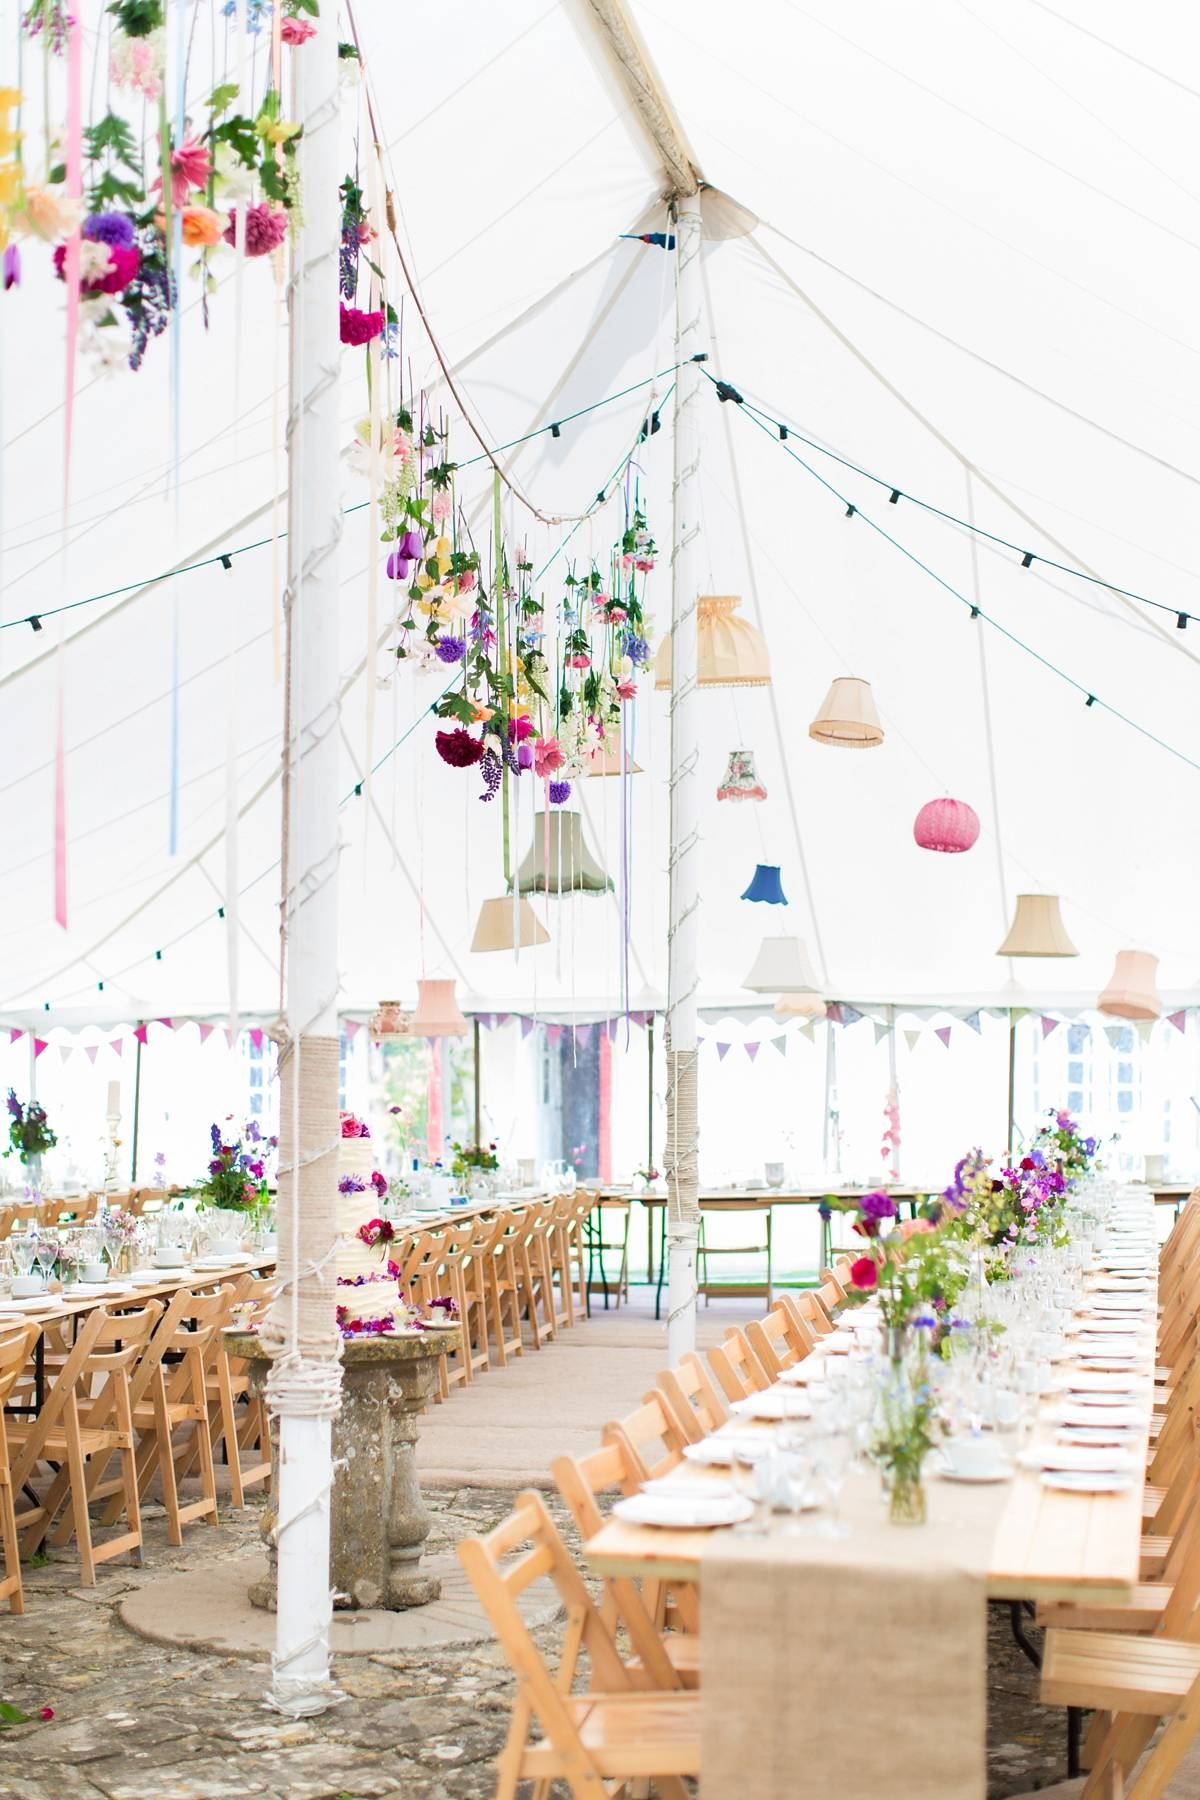 Lampshade Wedding Decor: 40 Unique Examples That Will Grab Your ...